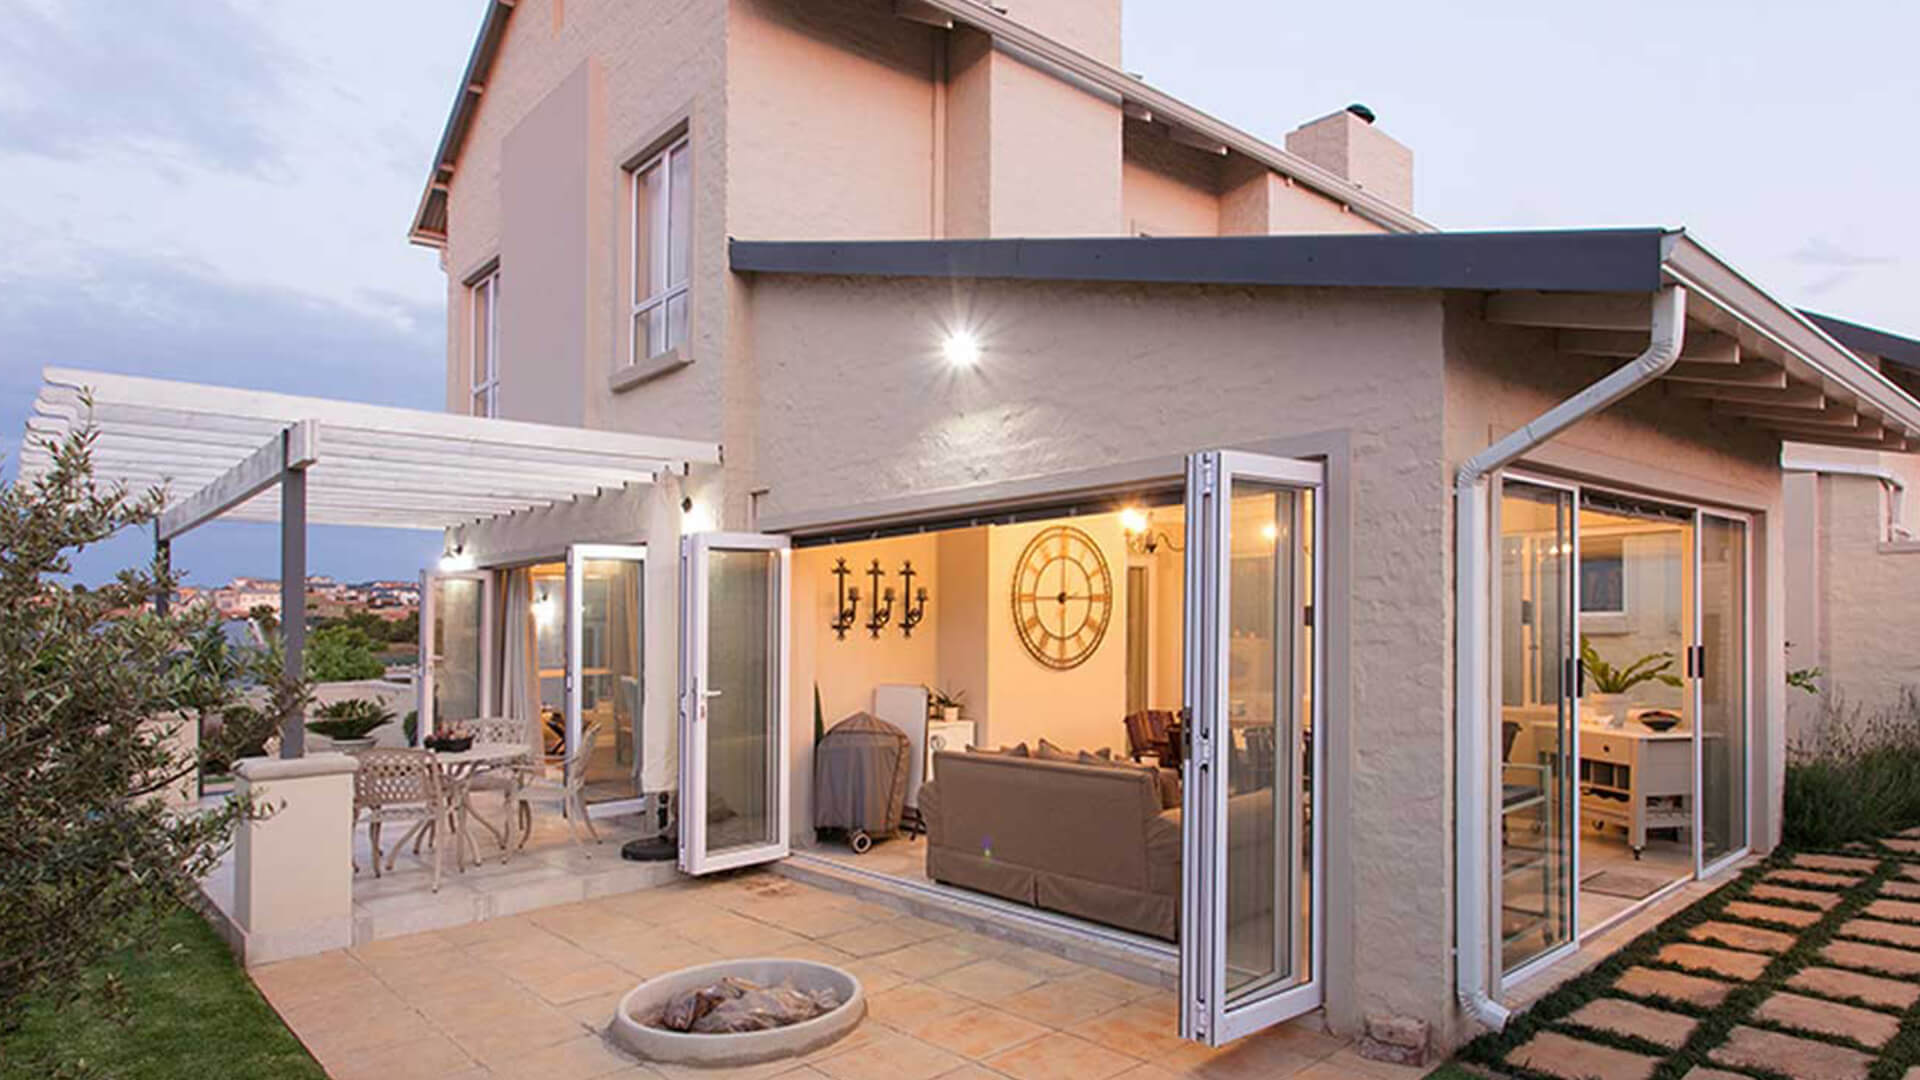 Cheap Nice Houses For Rent Near Me,  cheap house for rent near me,  cheap mobile homes for rent near me,  cheap houses for rent near me,  cheap houses for rent near me by owner,  cheap houses for rent near me pet friendly,  cheap houses for rent near me no credit check,  cheap houses for rent near me 2 bedroom,  cheap houses for rent near me 1 bedroom,  houses for rent near me by,  houses for rent near me by owner,  houses for rent near me.com,  cheap houses for rent near me cheap,  houses for rent near me craigslist,  houses for rent near me country,  houses for rent near me dog friendly,  cheap houses houses for rent near me,  houses for rent near me low income,  houses for rent near me large dog friendly,  houses for rent near me now,  houses for rent near me on,  houses for rent near me on craigslist,  houses for rent near me owner,  houses for rent near me pet friendly,  houses for rent near me private,  houses for rent near me private landlords,  houses for rent near me pool,  houses for rent near me to own,  houses for rent near me that are pet friendly,  houses for rent near me under 1000,  houses for rent near me under 800,  houses for rent near me under 1500,  houses for rent near me under 1200,  houses for rent near me under 600,  houses for rent near me under 900,  houses for rent near me under 700,  houses for rent near me under 500,  houses for rent near me with section 8,  houses for rent near me zillow,  houses for rent near me zumper,  cheap house for rent near me by owner,  cheap house for rent melbourne,  cheap places to rent weekly near me,  cheap house for sale melbourne,  cheap houses for rent near me under 1000,  cheap houses for rent near me craigslist,  cheap places to rent near me for a party,  houses for rent near me that are cheap,  house for rent near by me,  house for rent near me 3 bedroom,  houses for rent near me 3 bedroom,  houses for rent near me 4 bed,  house for rent near me by owner,  house for rent near me below 5000,  house for rent near me for cheap,  houses for rent near me for cheap,  cheap houses for rent in near me,  cheap houses for rent with utilities included near me,  houses for rent near me new,  cheap house on rent near me,